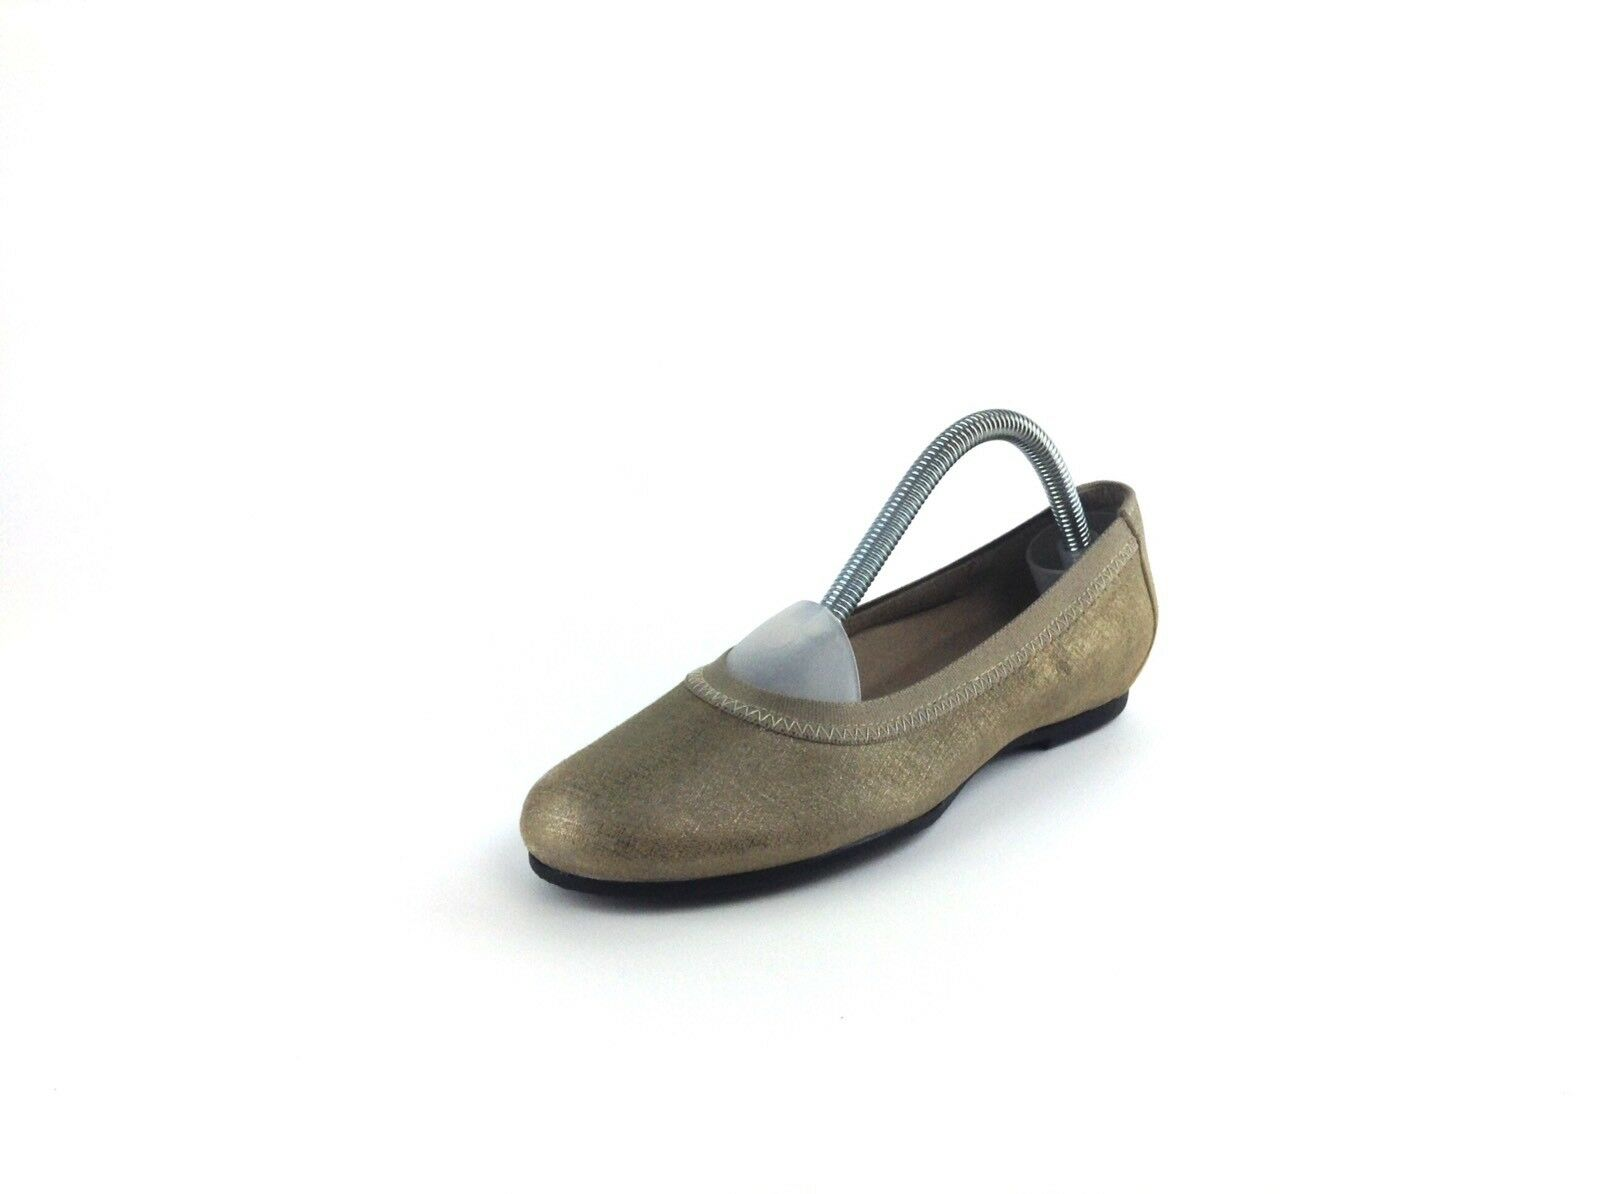 Munro Womens Taupe beige Sparkle Flats 5 1 2 M